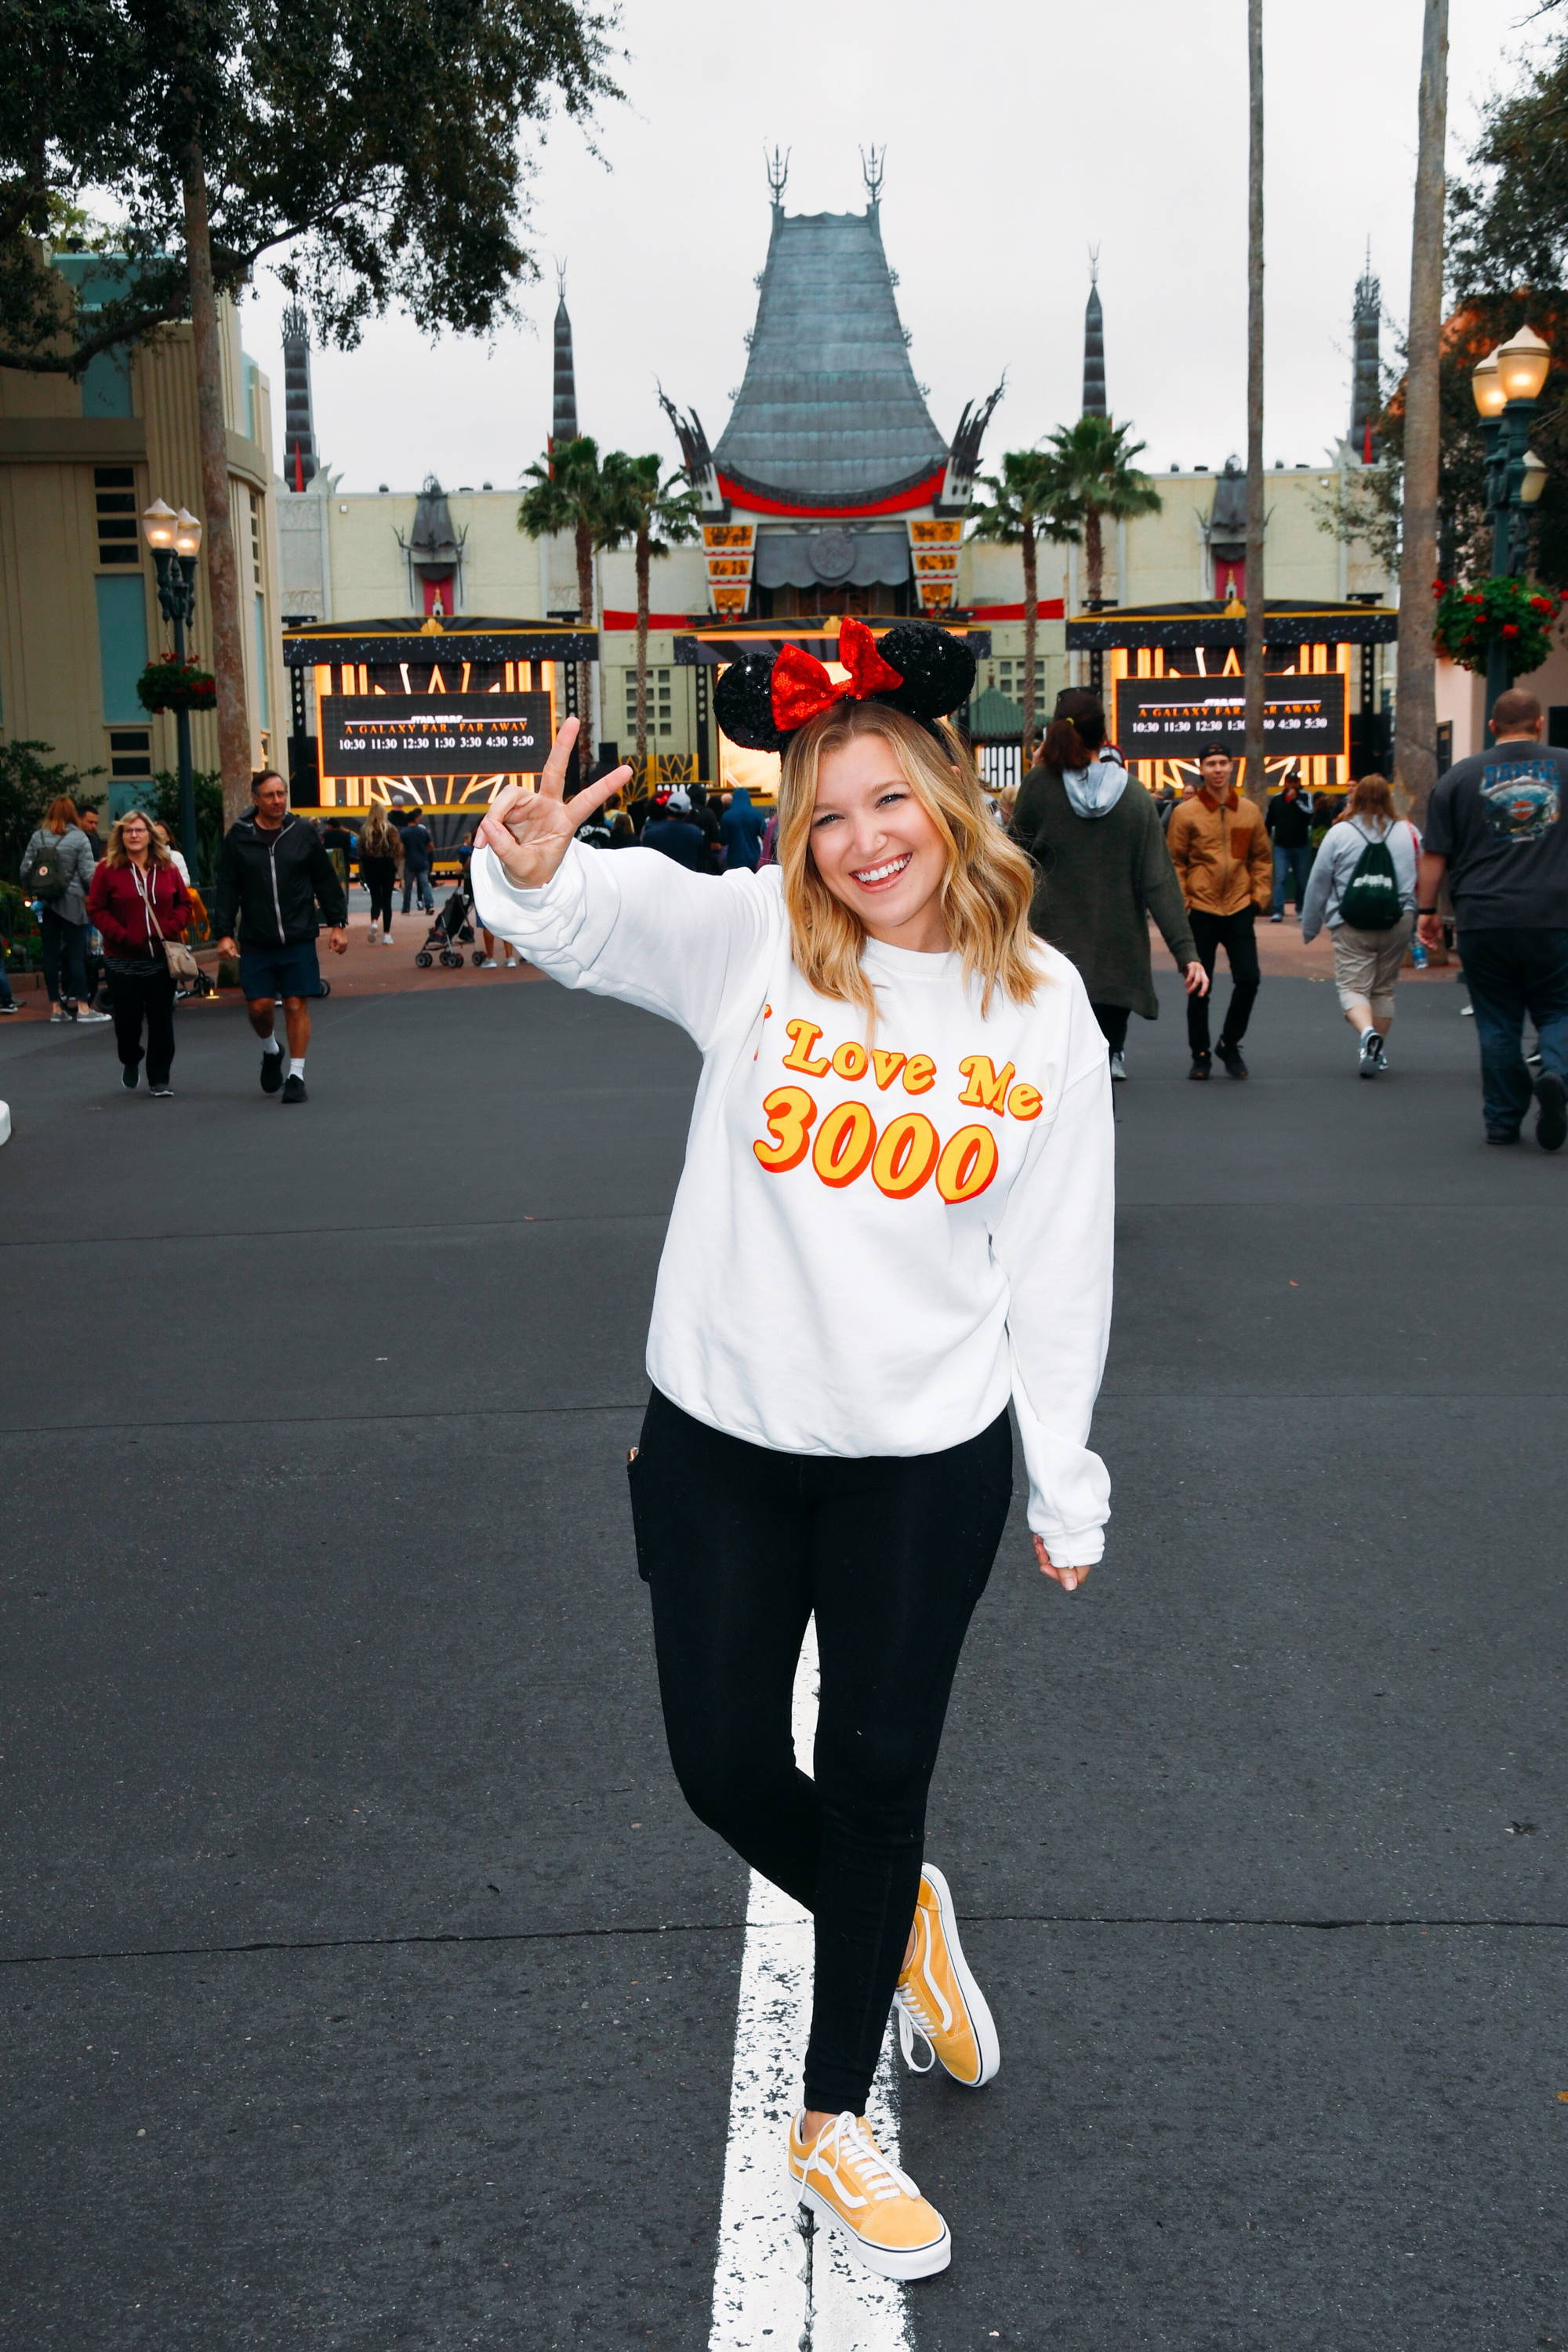 I Love Me 3000: The Best Solo Things to Do at Disney World This Valentines Day